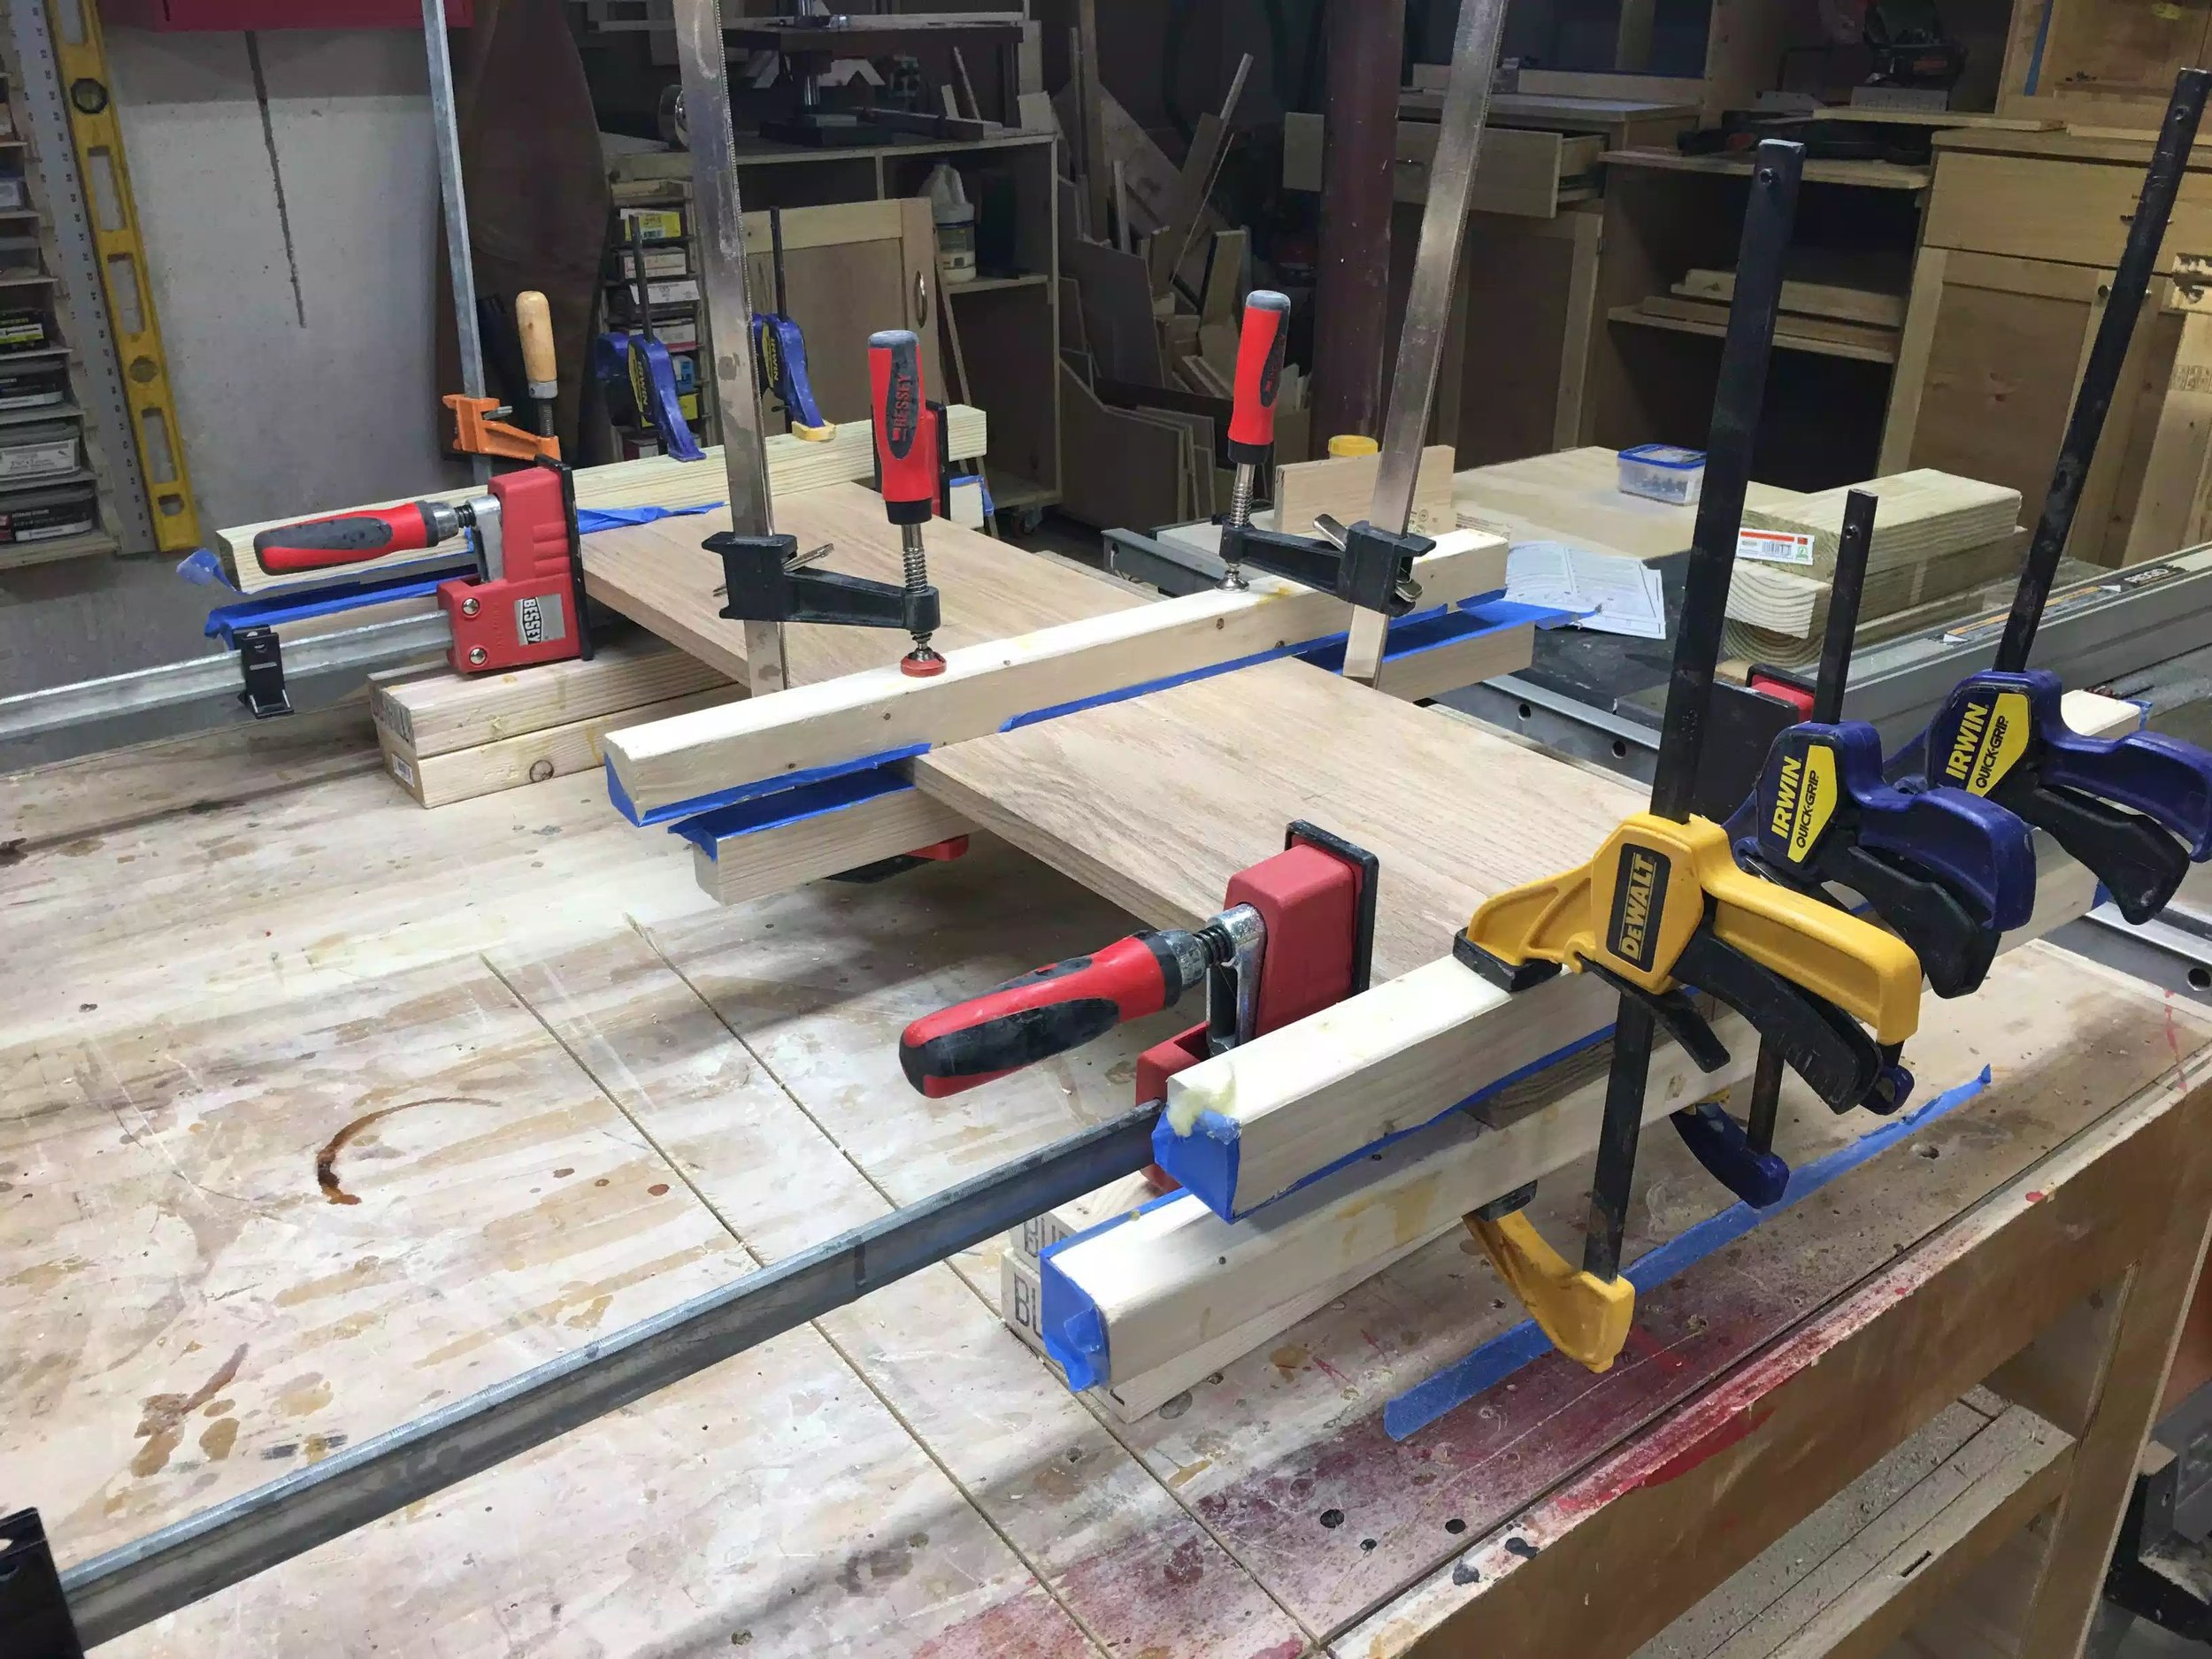 Another glue-up image